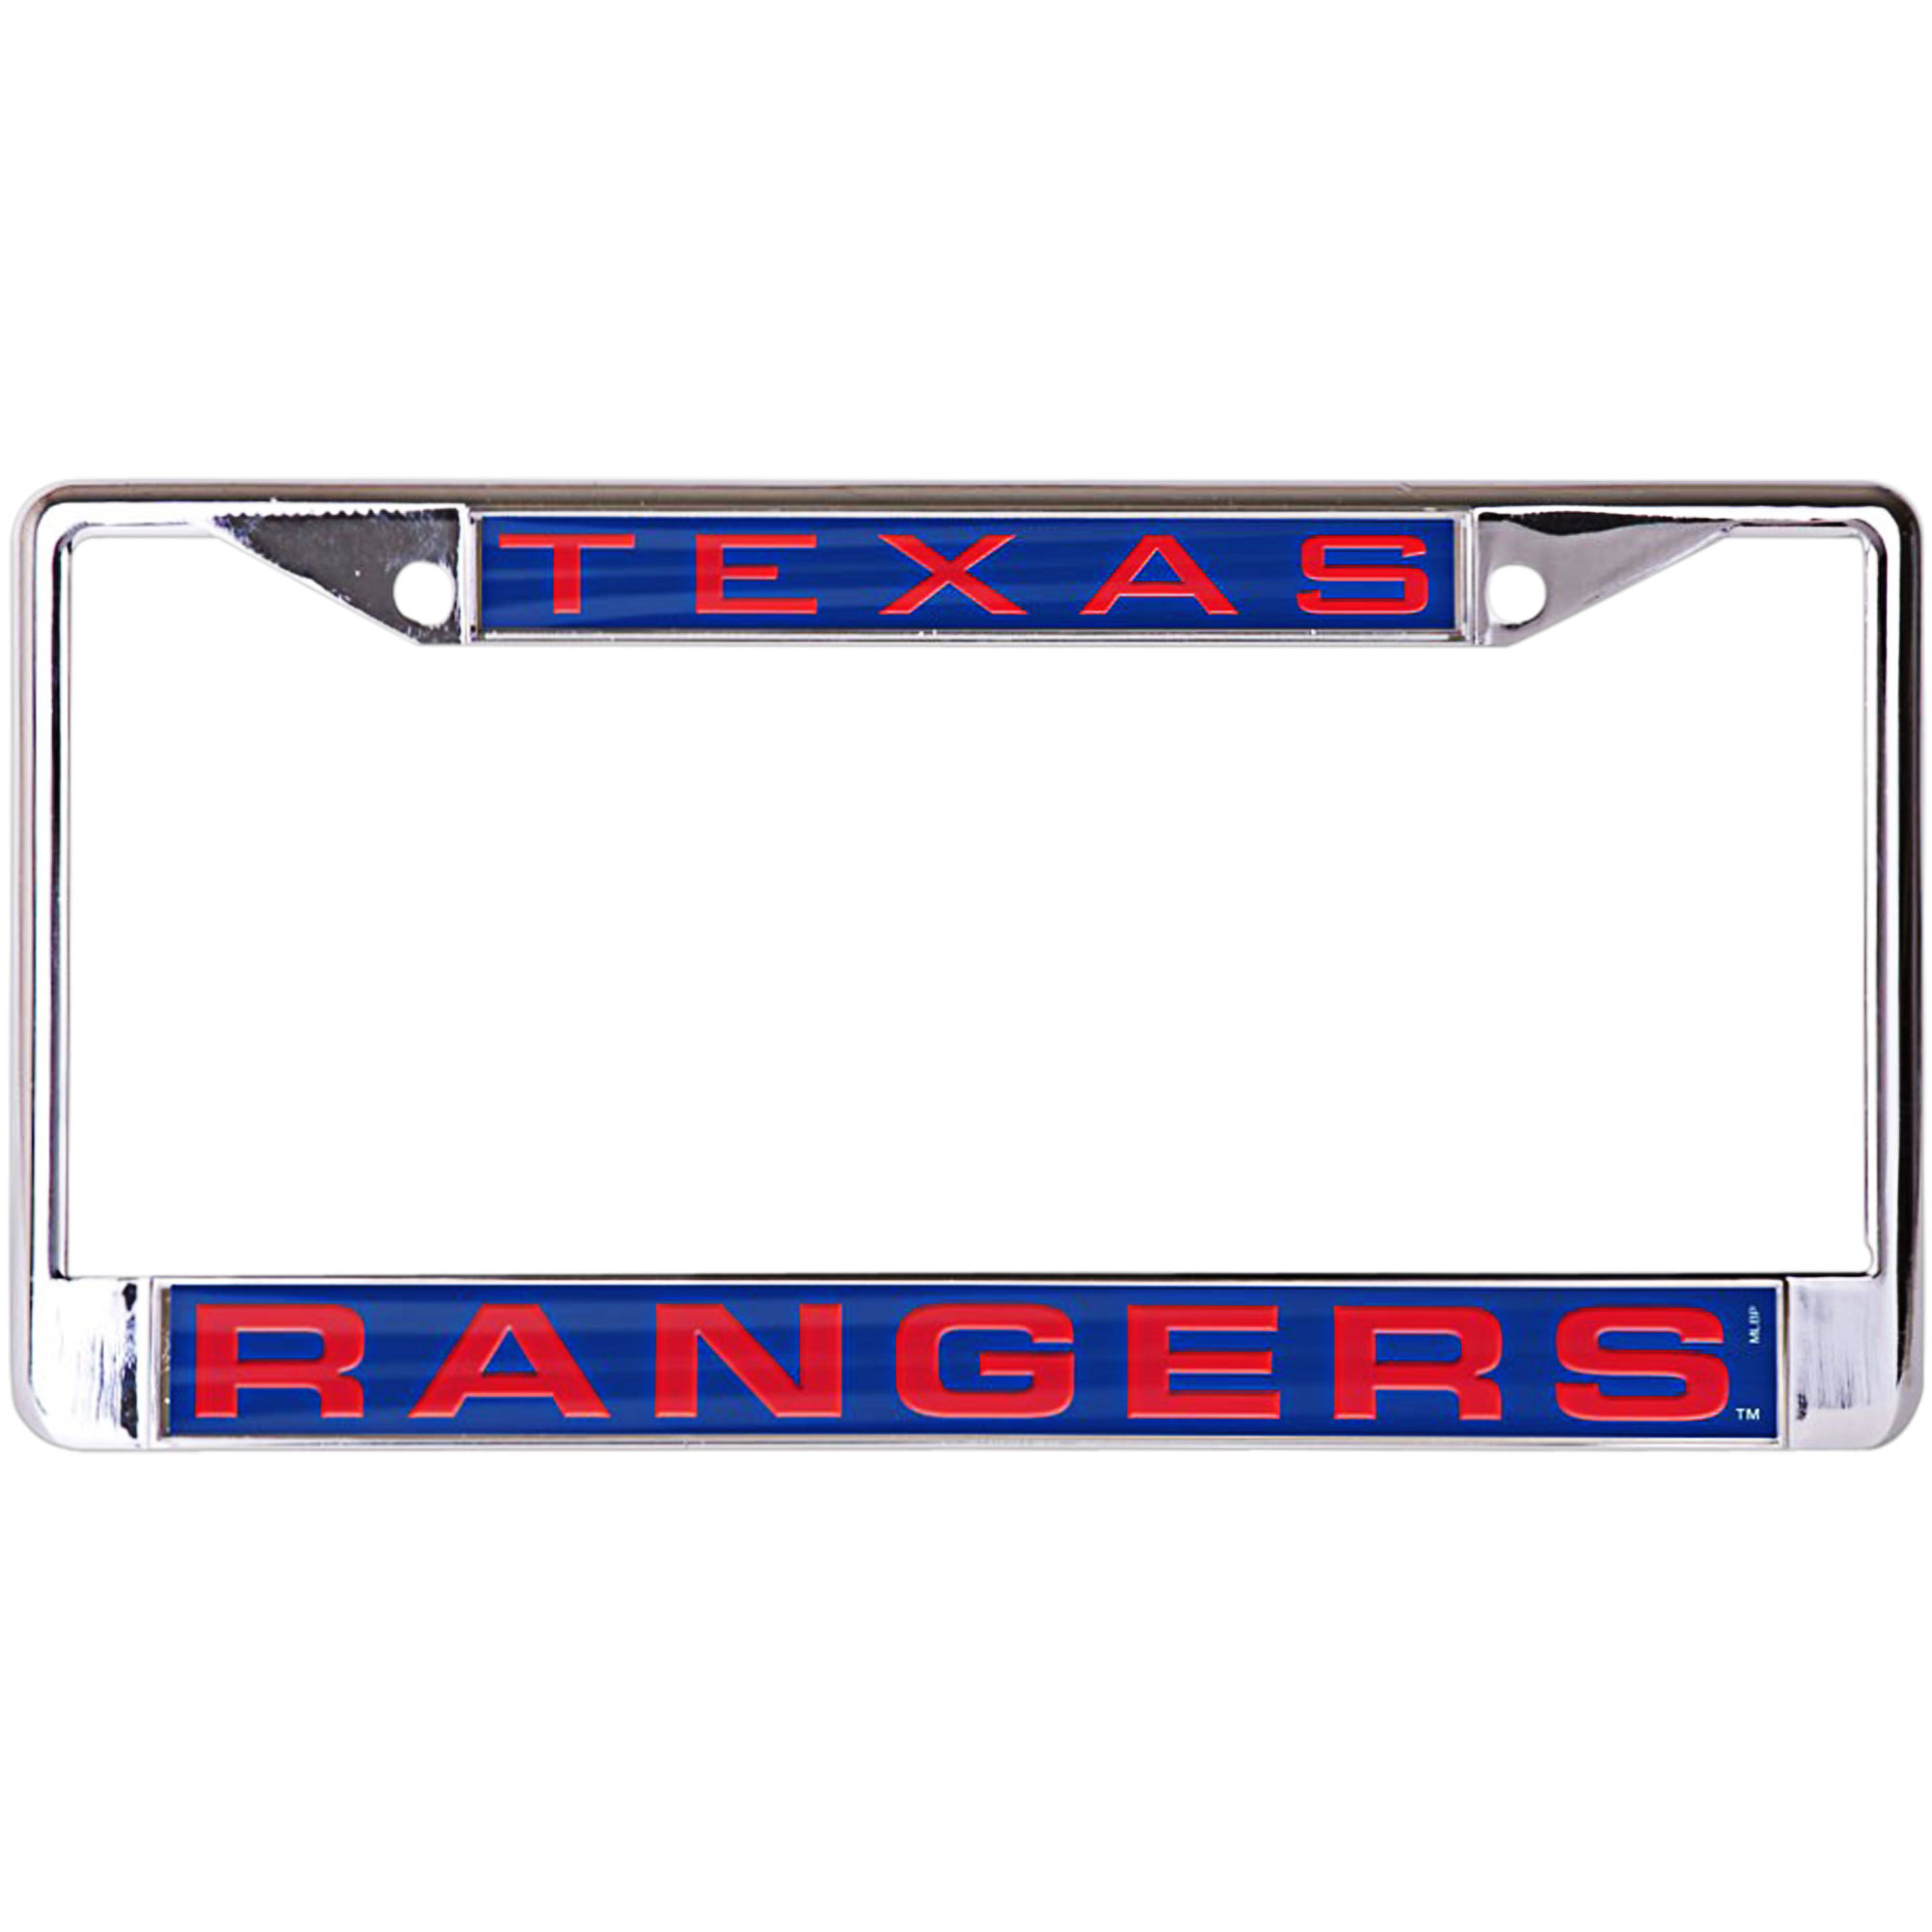 Texas Rangers WinCraft Laser Inlaid Metal License Plate Frame - No Size